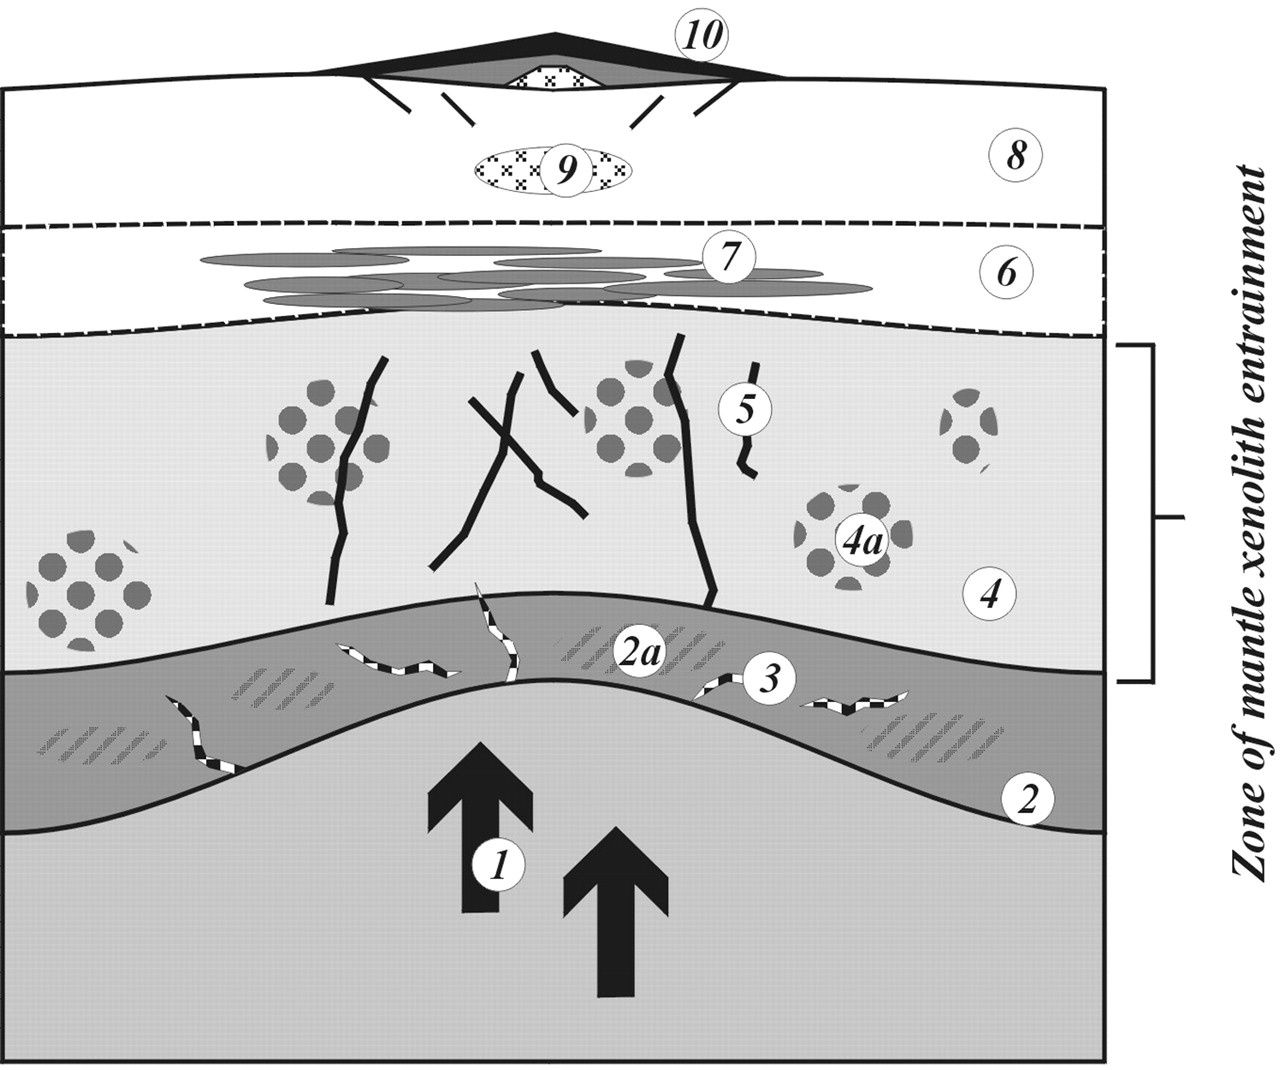 Schematic representation of the components of the crust and mantle beneath the Vogelsberg - after Boggard and Wörner - reference in sources. 1, Upwelling asthenosphere (EAR - European Asthenospheric Reservoir - signature)&#x3B; 2, lower lithospheric mantle (depleted)&#x3B; 2a, metasomatized regions of the TBL (anhydrous)&#x3B; 3, hydrous mineral bearing veins (∼70 Ma?)&#x3B; 4, upper lithospheric mantle (depleted)&#x3B; 4a, metasomatized regions of the MBL (Hercynian, hydrous)&#x3B; 5, veins related to Tertiary volcanism&#x3B; 6, lower crust&#x3B; 7, Tertiary intrusions (alkalic and/or tholeiitic)&#x3B; 8, middle and upper crust&#x3B; 9, magma chamber (alkaline differentiates)&#x3B; 10, Vogelsberg.